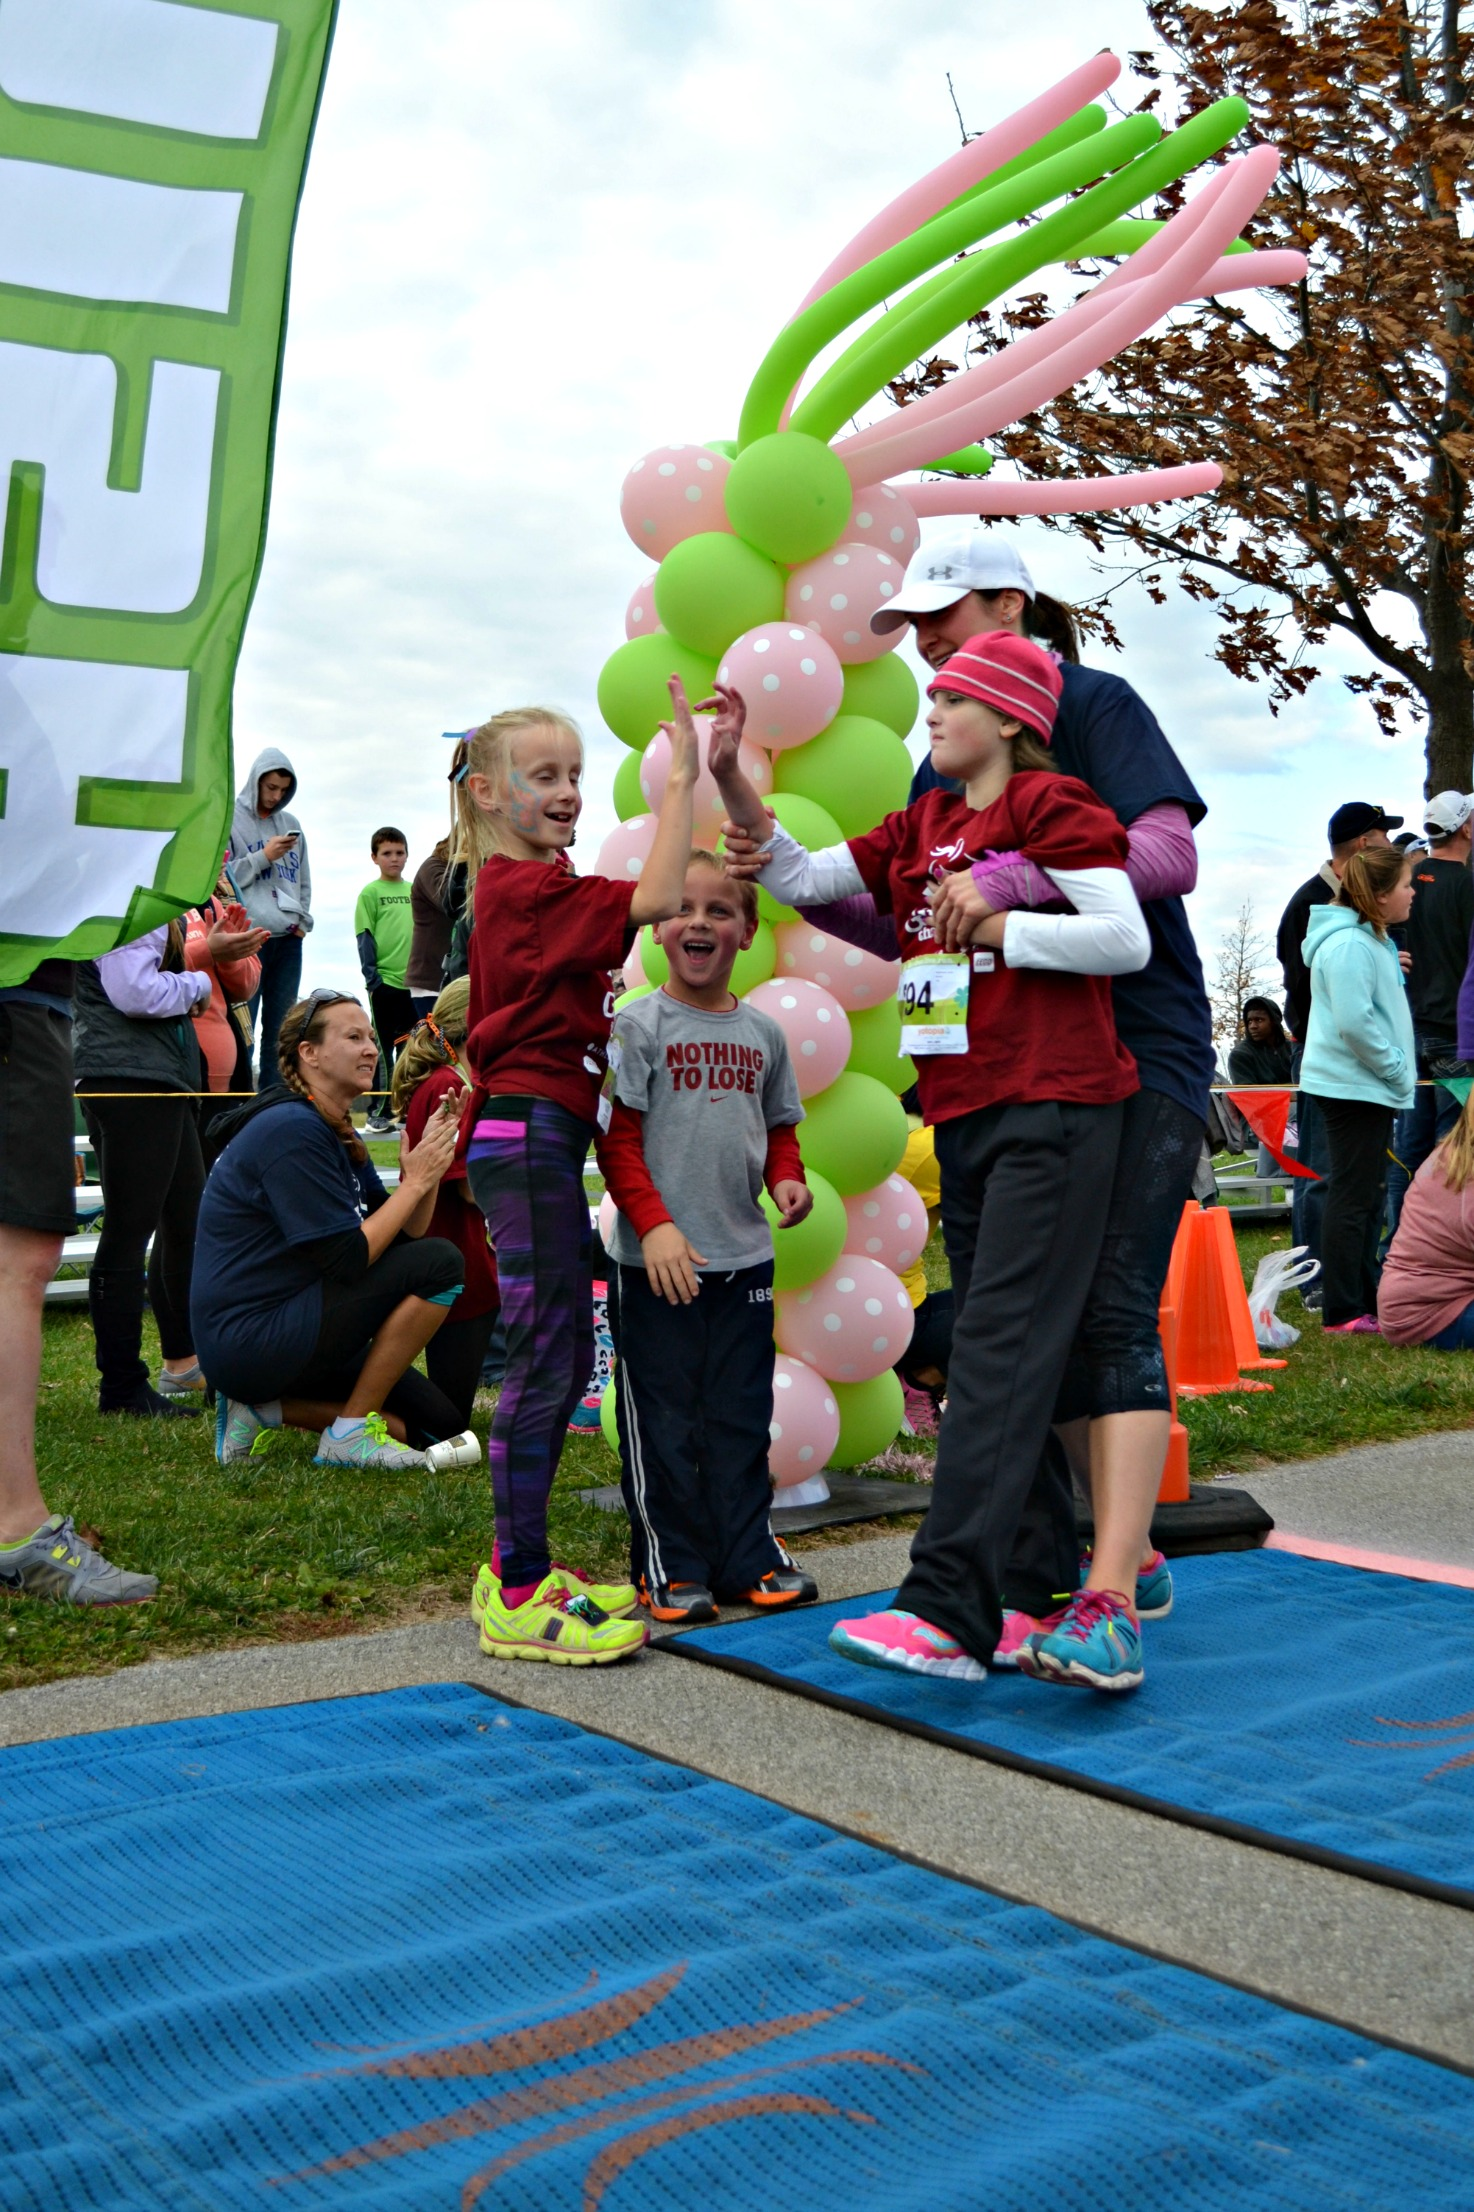 Anna and sister Averie high-five at finish line